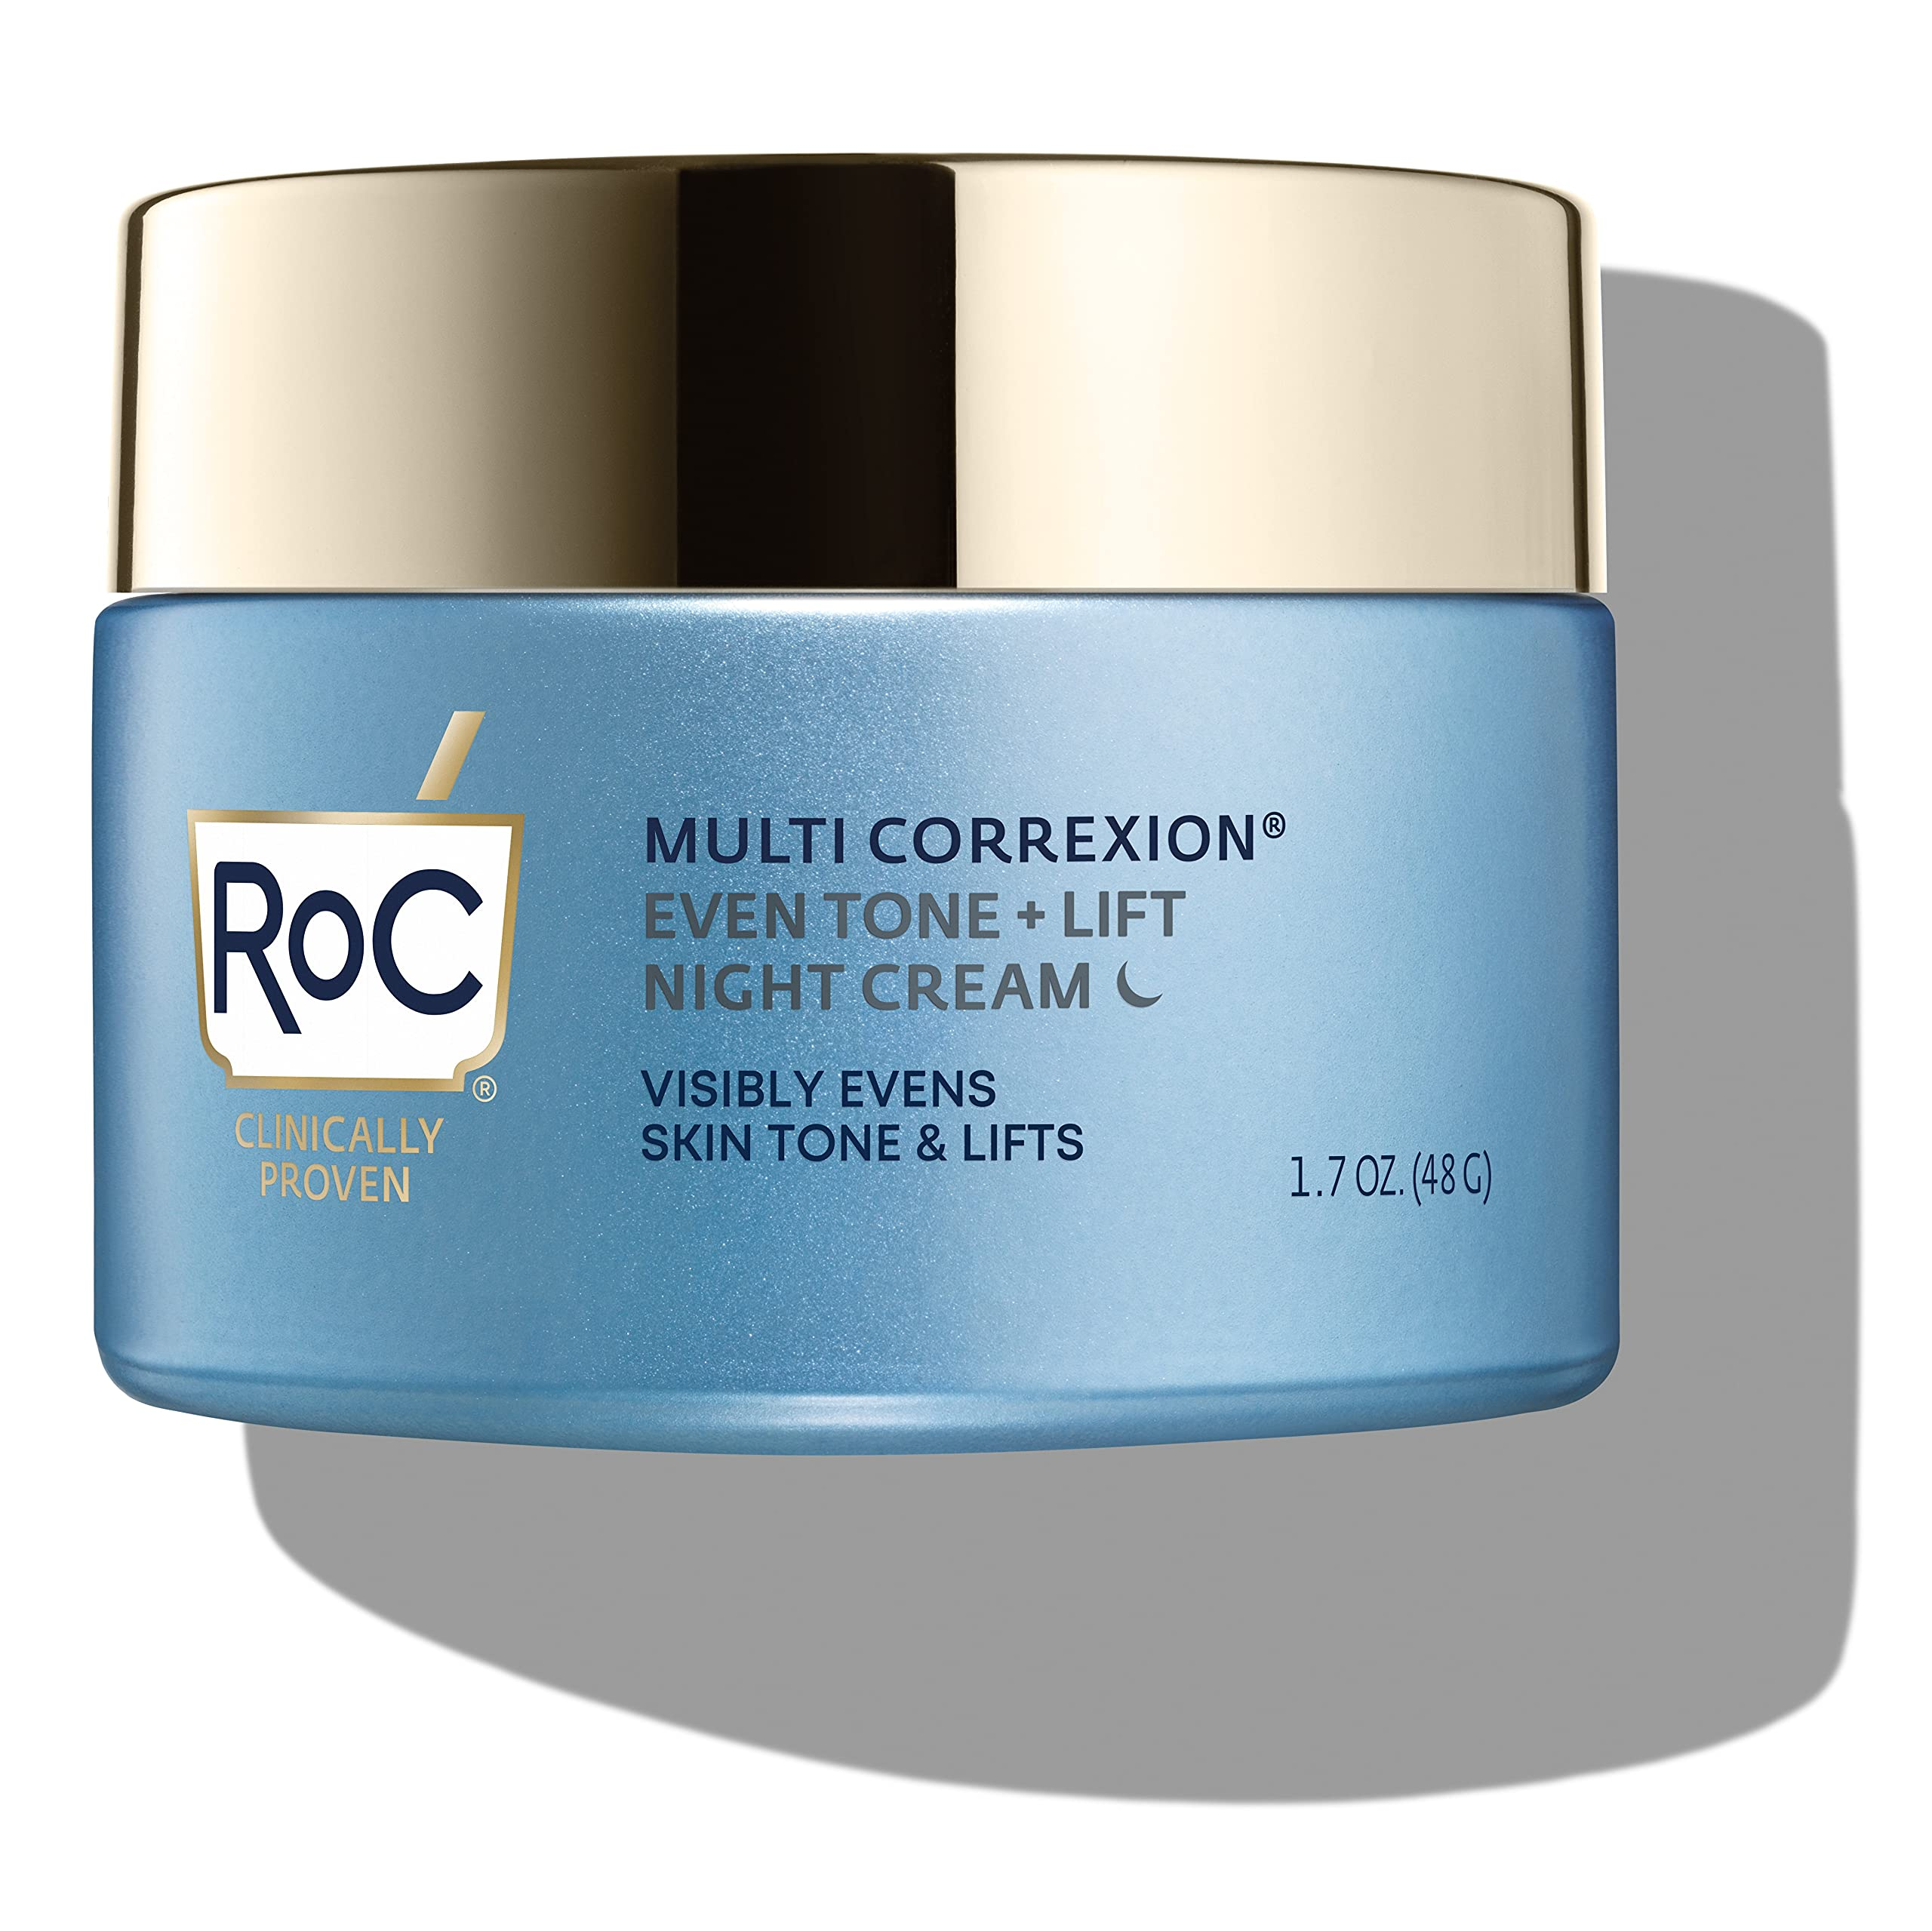 RoC Multi Correxion 5 in 1 Restoring/Anti Aging Facial Night Cream with Hexinol, 1.7 Oz (Packaging May Vary)